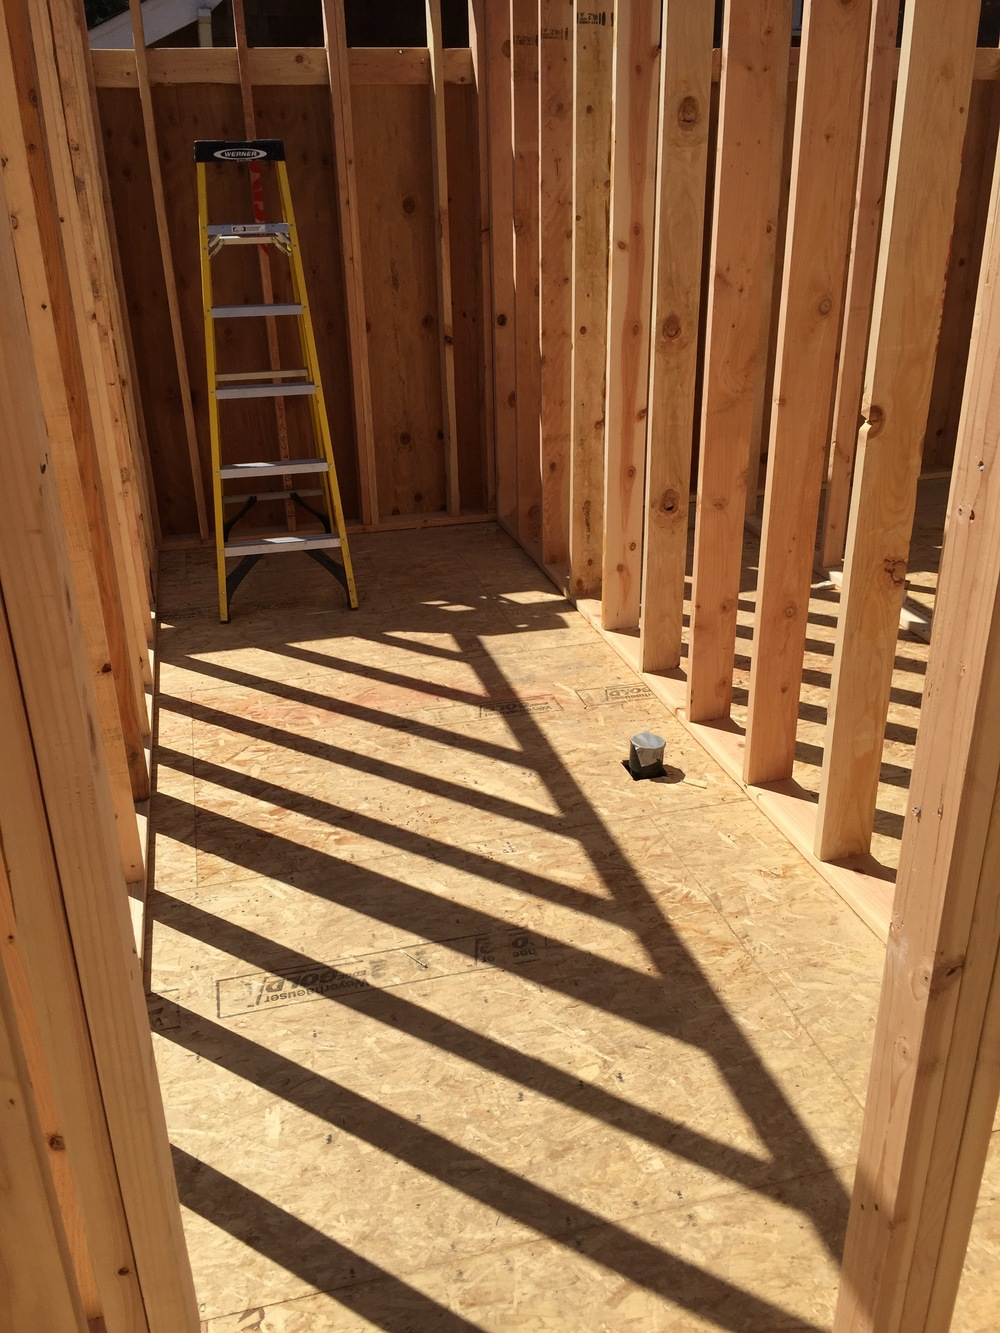 This is where the powder room and furnace / storage (towards the back,under the stairs) will be